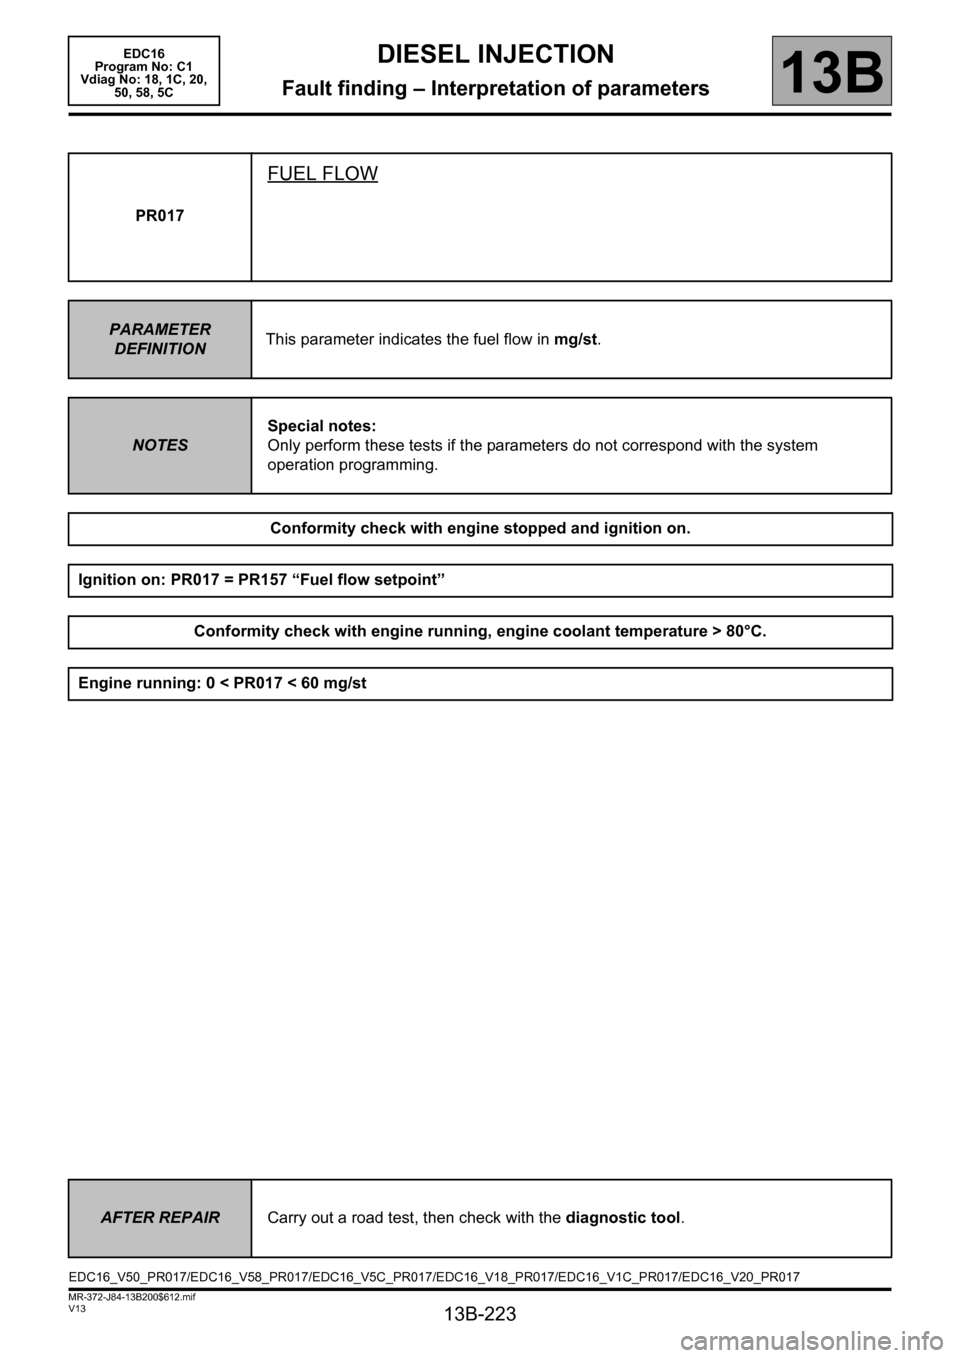 RENAULT SCENIC 2011 J95 / 3.G Engine And Peripherals EDC16 Workshop Manual, Page 223